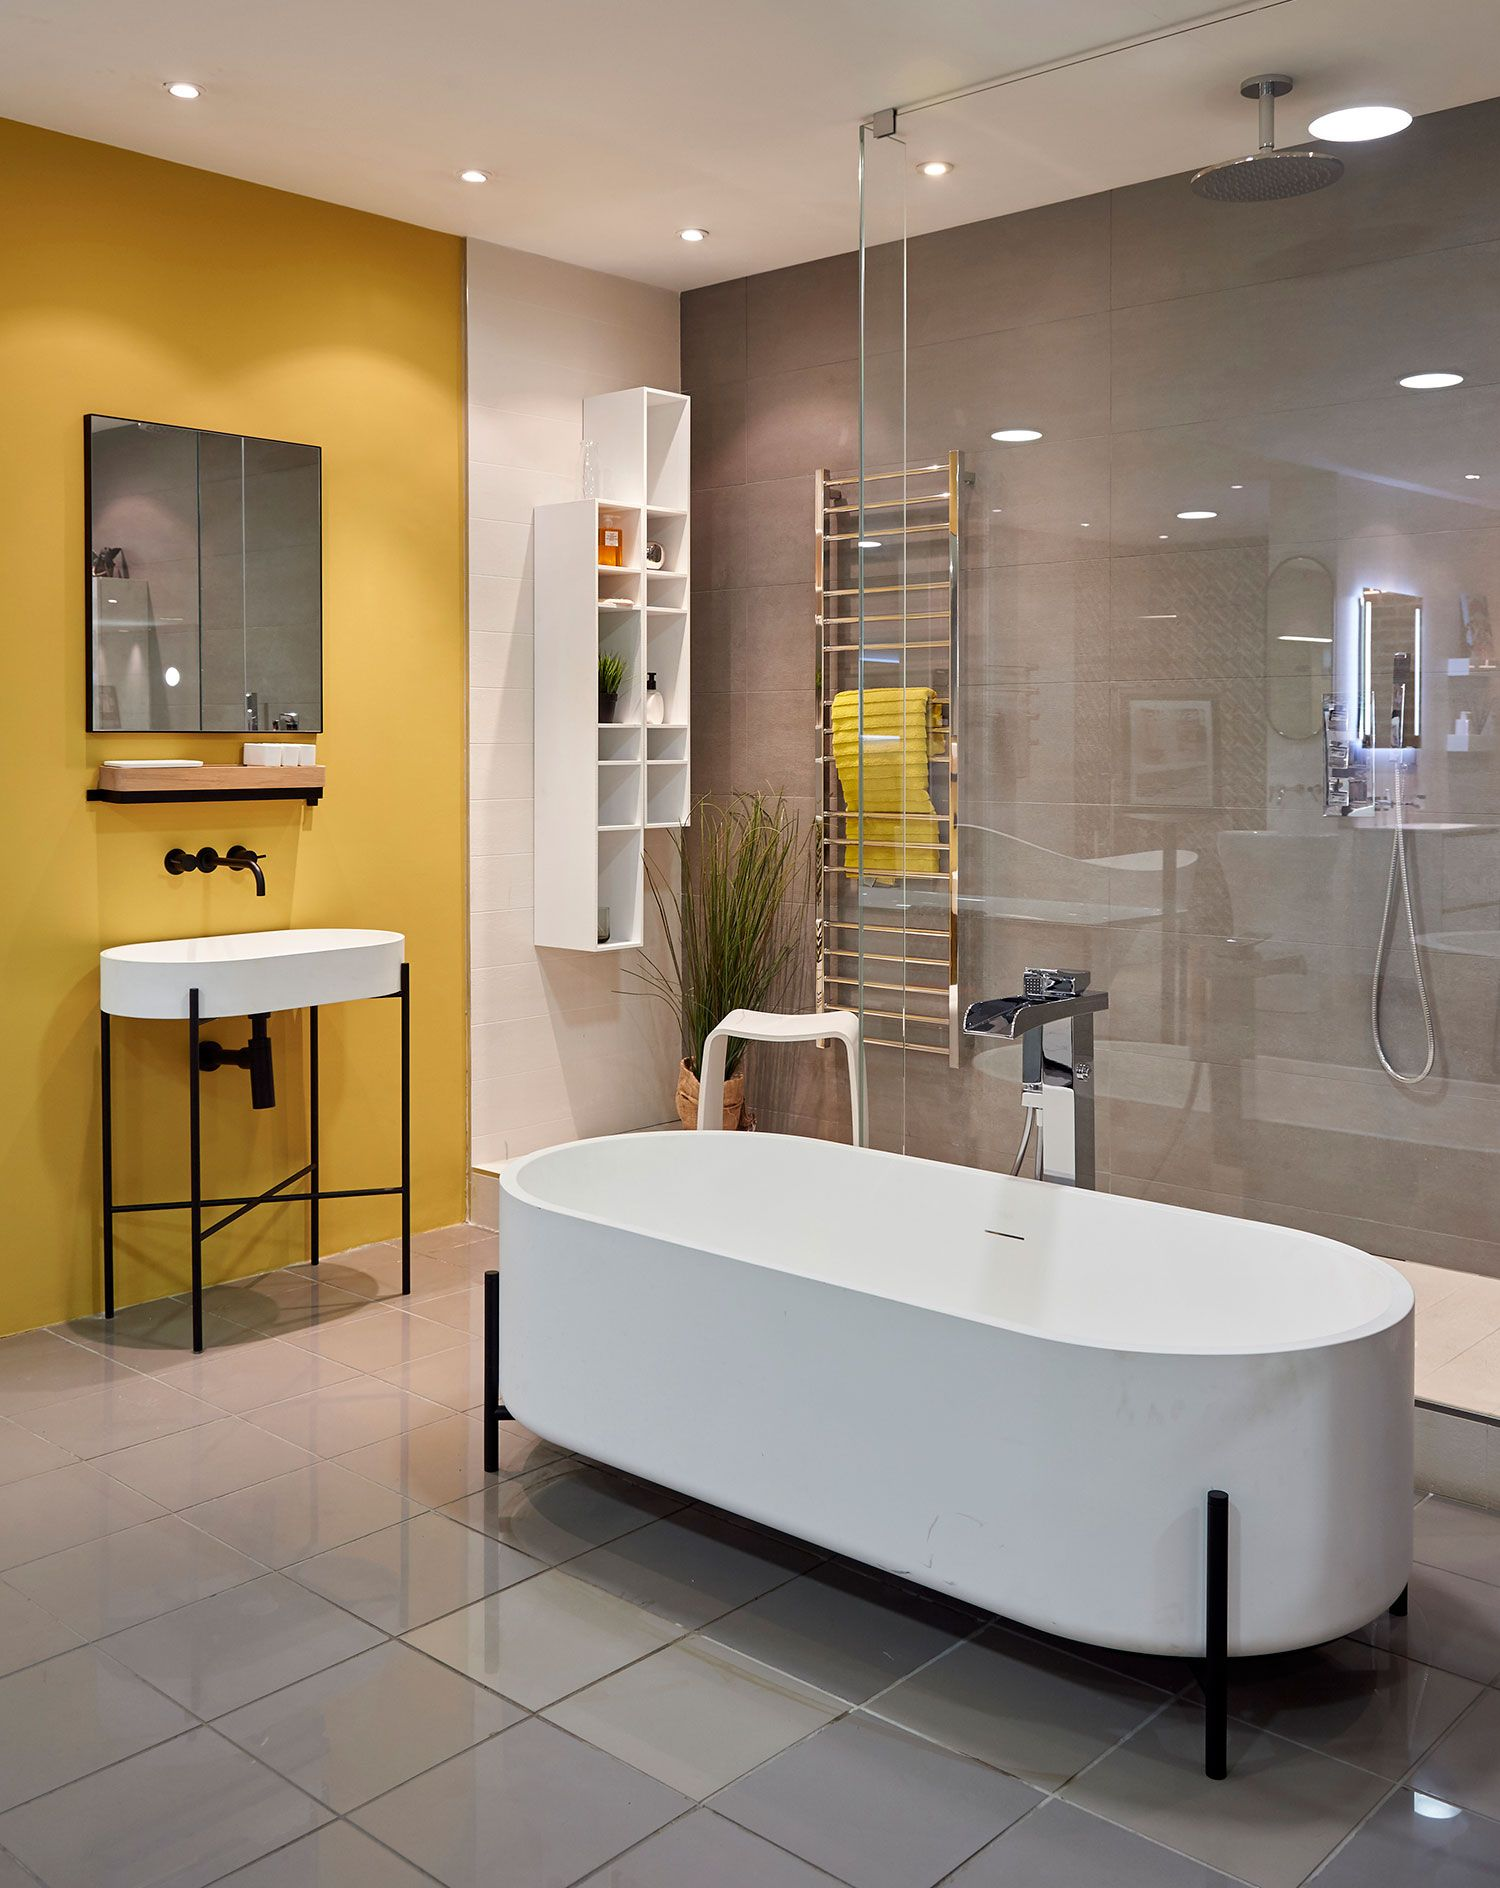 Eaudace Salle De Bain Longueuil ~ ex t s stand collection is a beautiful and simplsitc deisgn that has